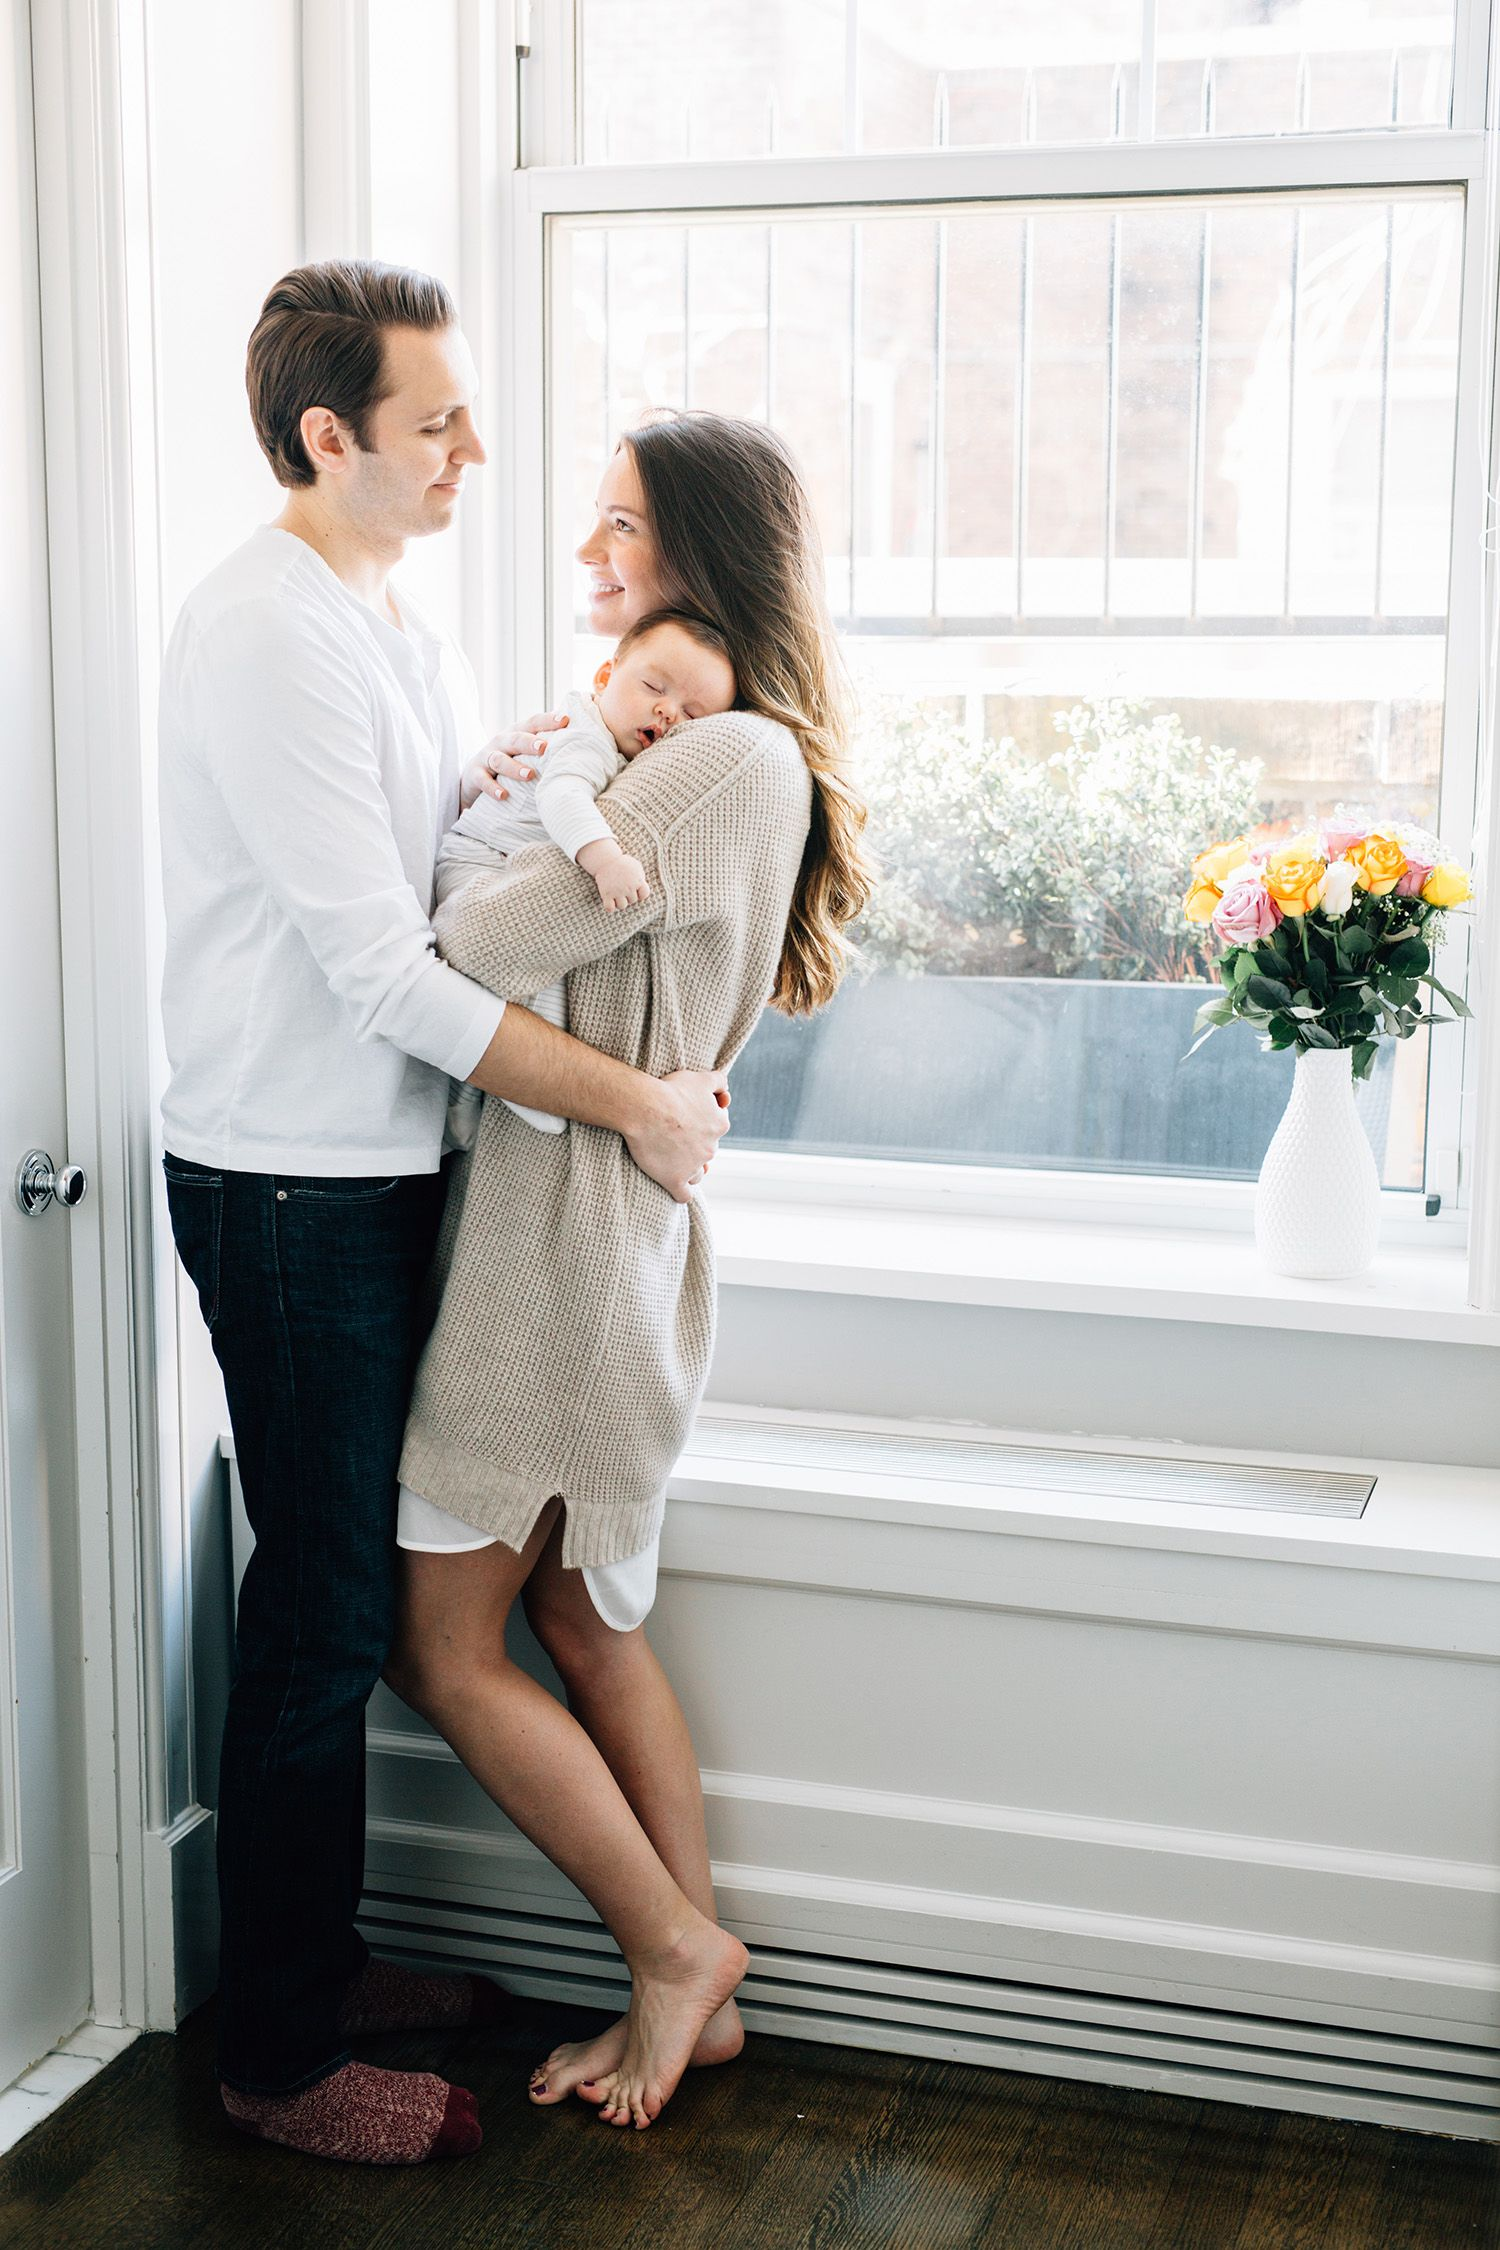 This nyc lifestyle family session was one of my favorites. We were able to  shoot at a beautiful nyc penthouse filled with natural dreamy light, it was  perfect for their lifestyle session! It was so sweet watching Janelle and  Ryan cuddle and snuggle baby Jack all afternoon. He loved it so much